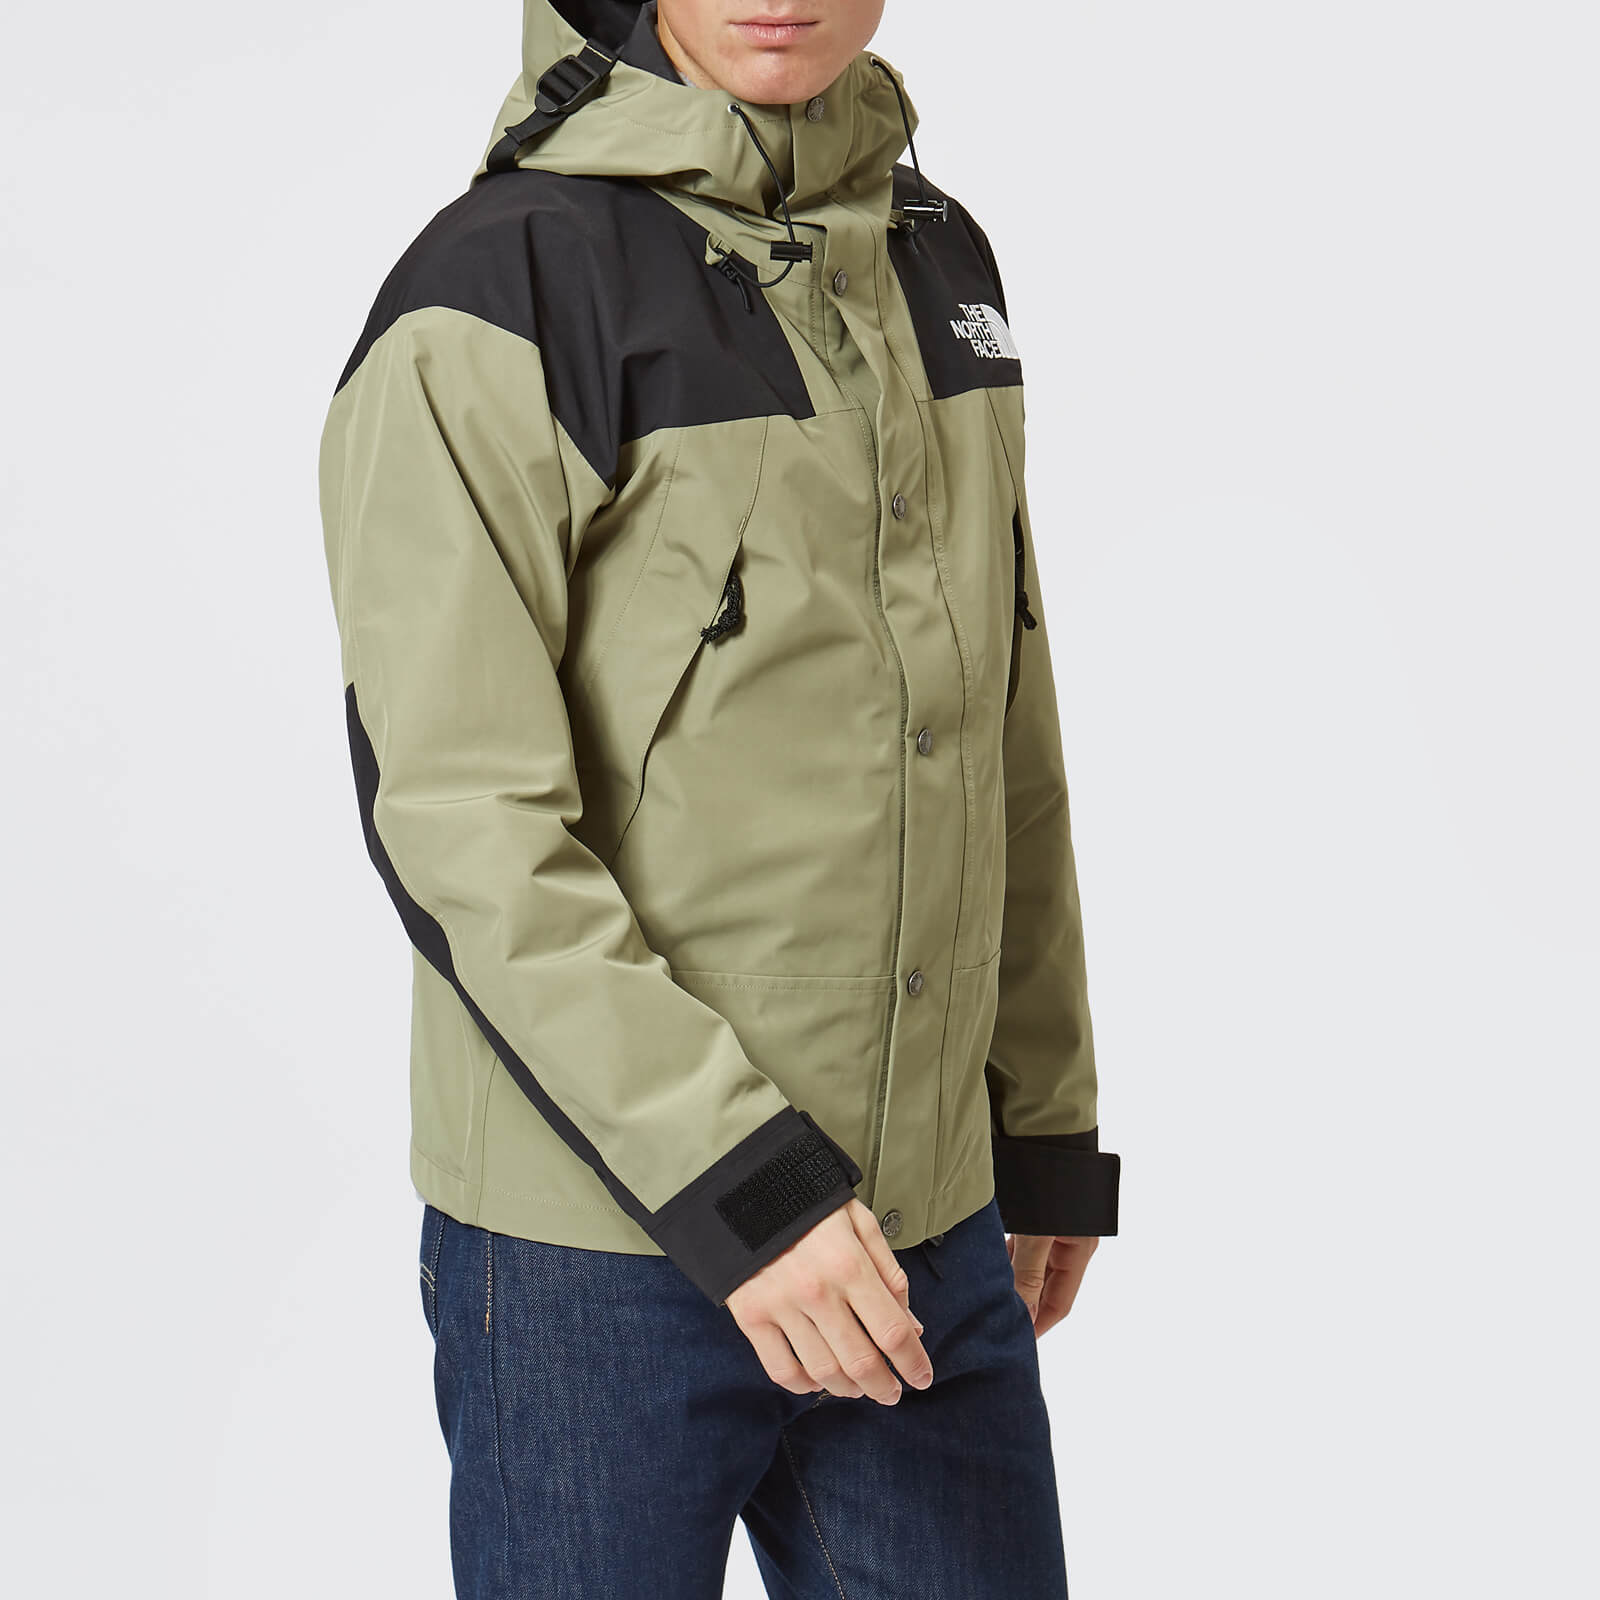 c80829df2720 ... The North Face Men s 1990 Mountain Gore-Tex Jacket - Tumbleweed Green